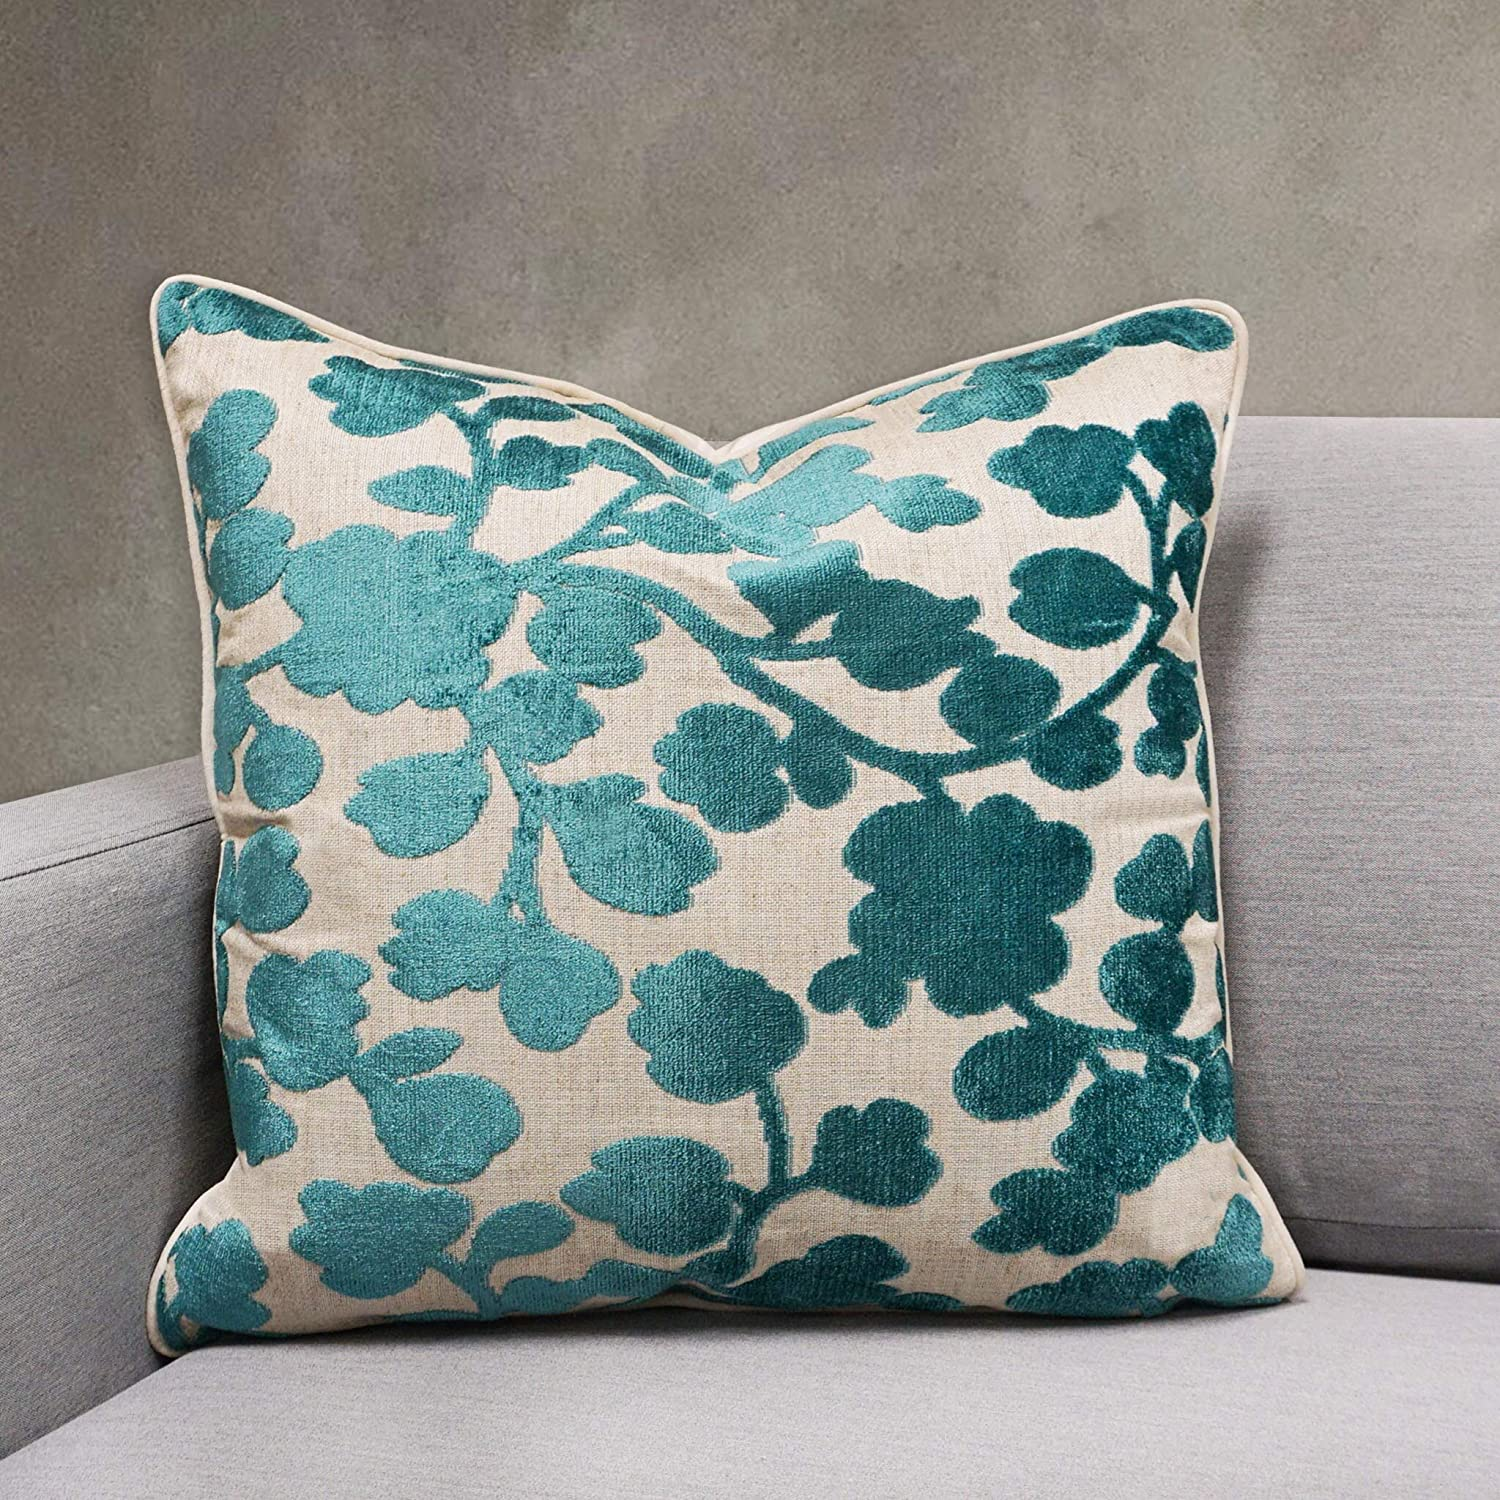 Unknown1 Blossom Cut Challenge the lowest price Velvet Throw Floral Outlet ☆ Free Shipping Mo Pillow 20